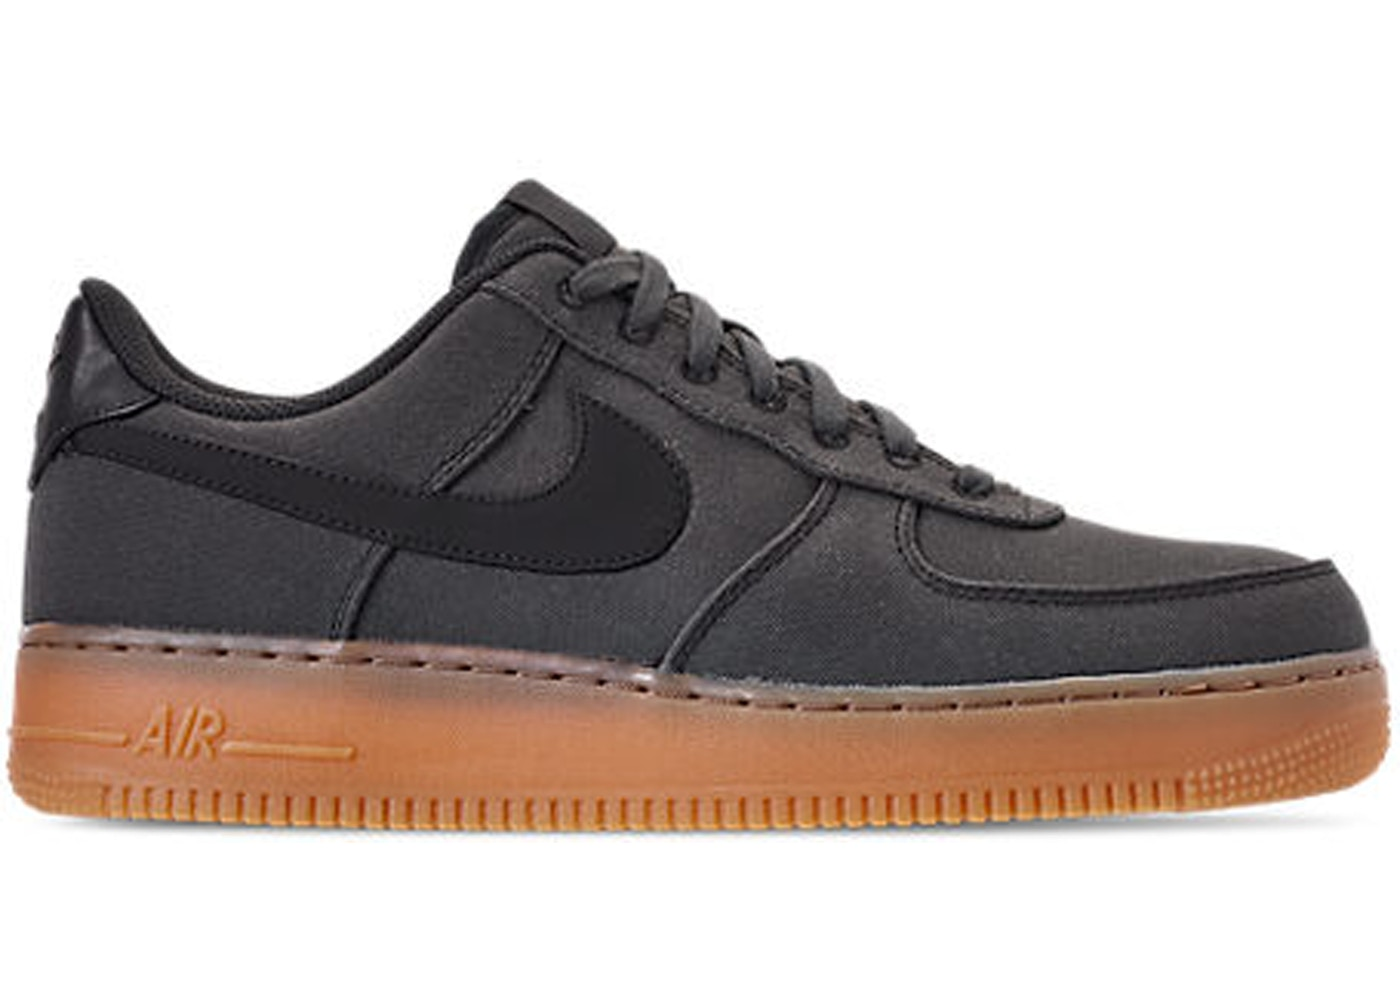 22ccc3cf23fe Air Force 1 Low  07 Black Gum - AQ0117-002